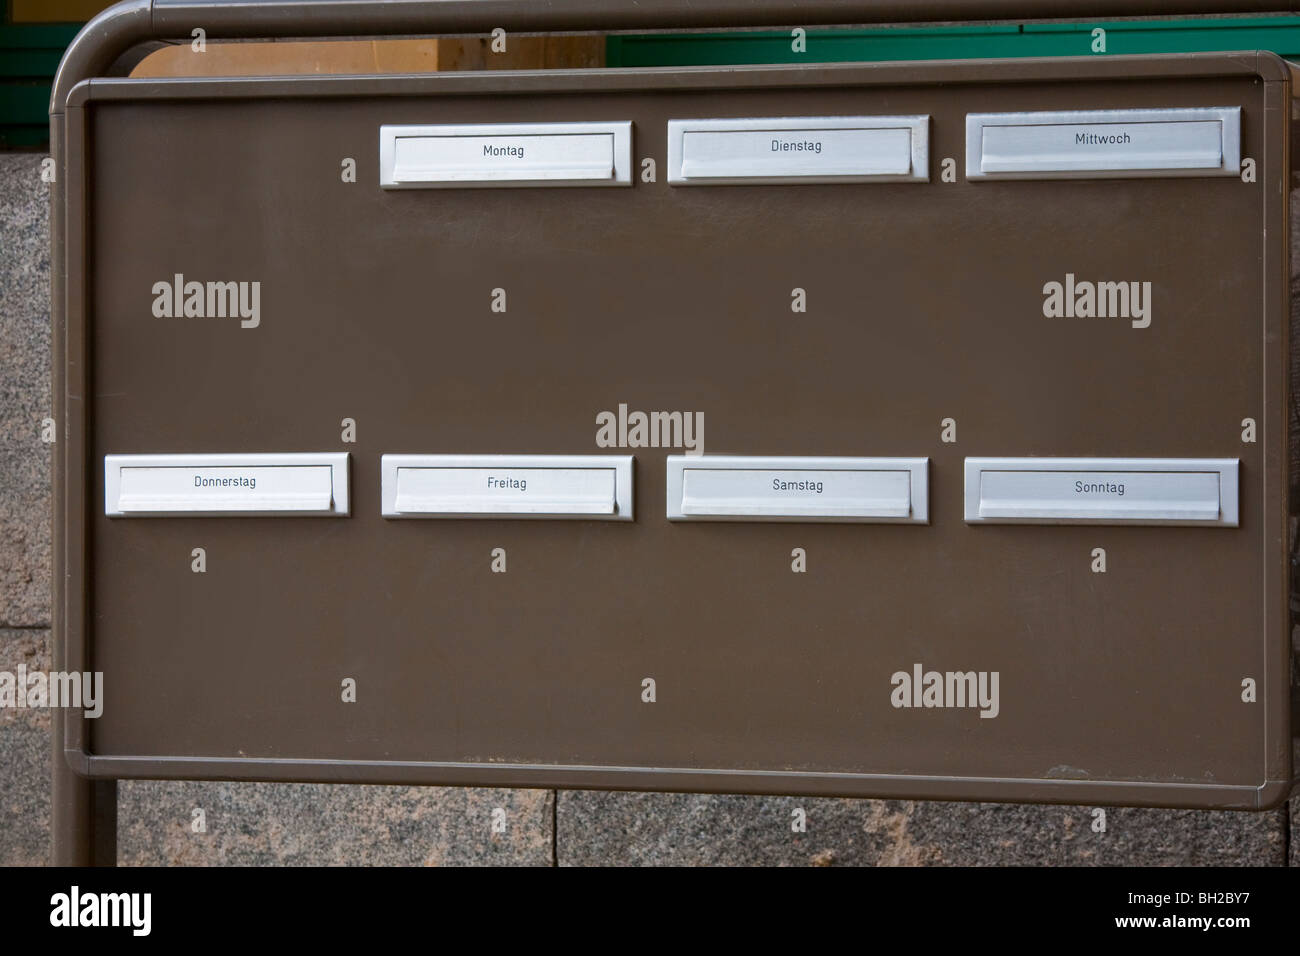 LETTER BOX, DAYS OF THE WEEK, GERMANY - Stock Image